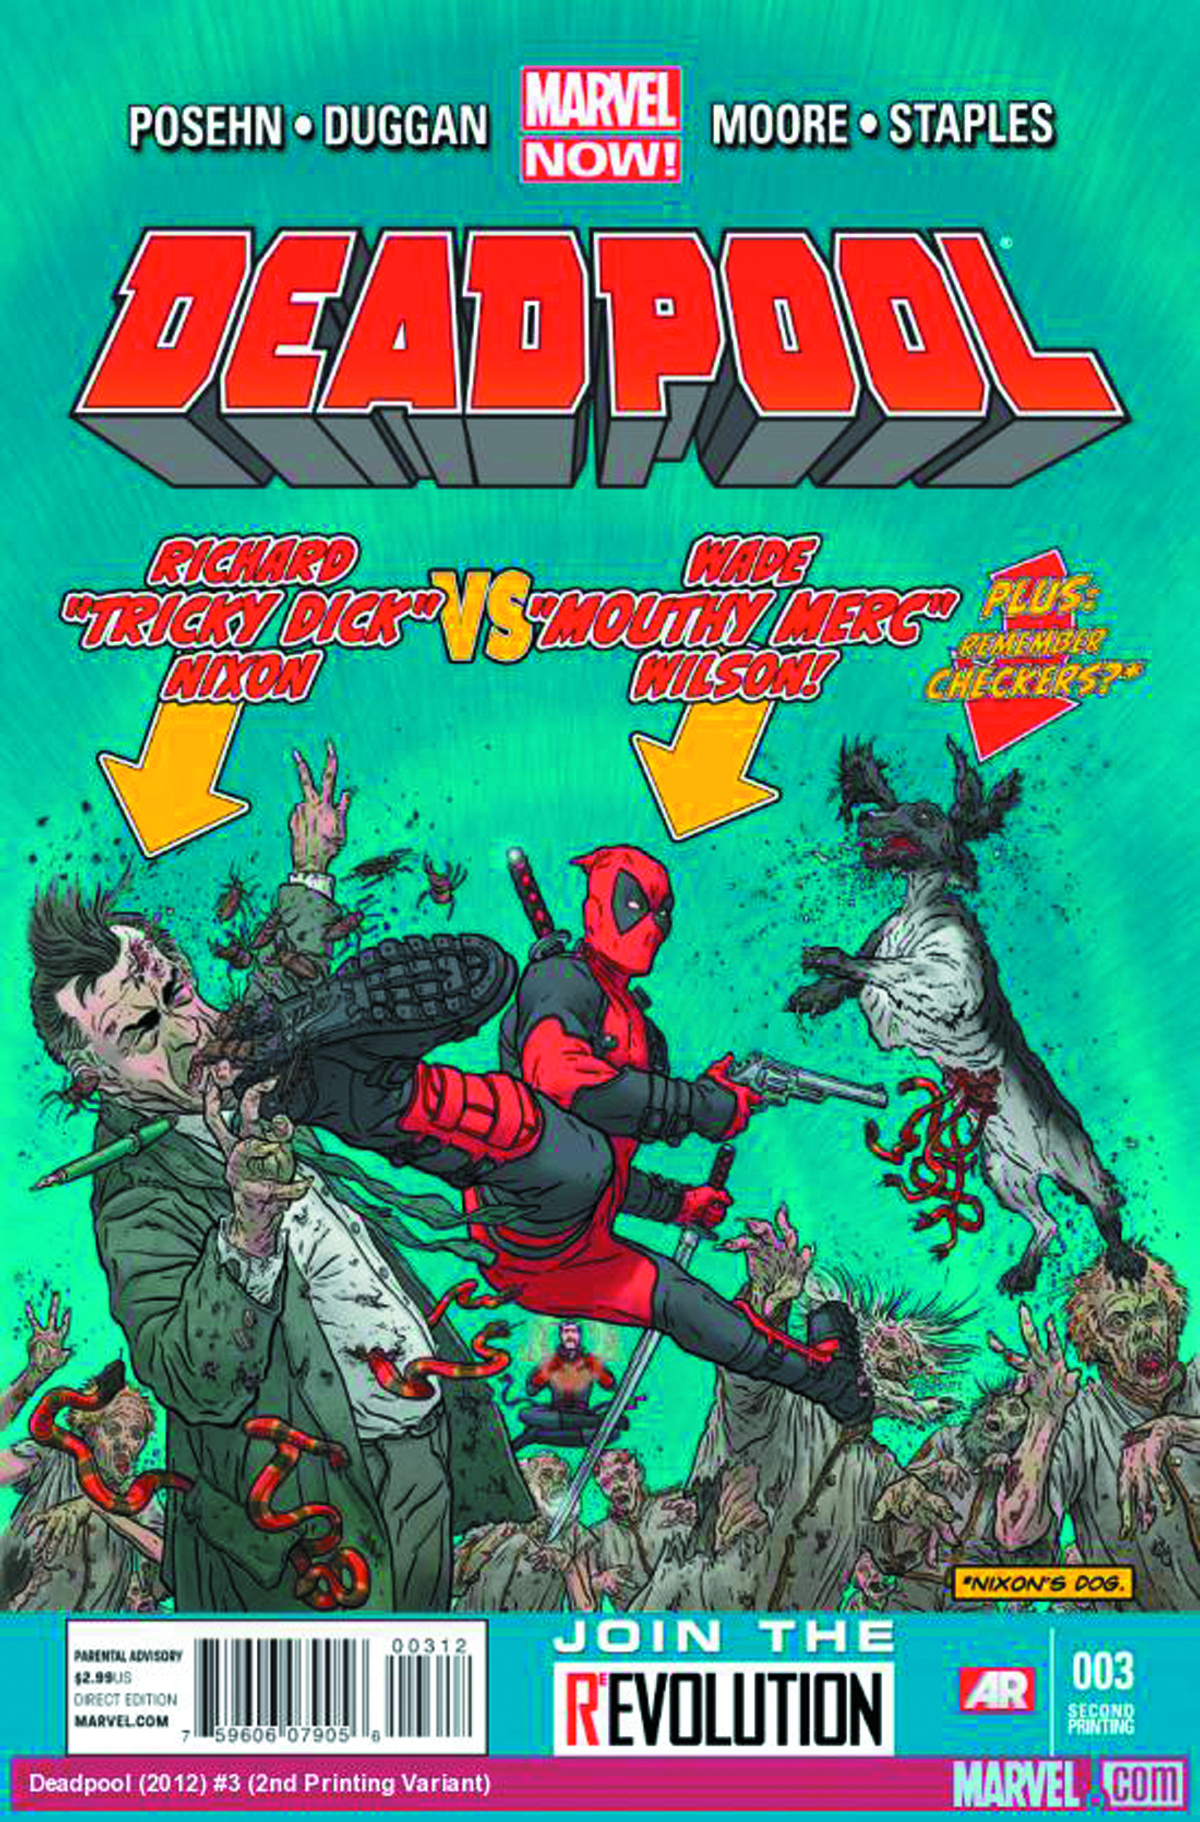 DEADPOOL #3 3RD PTG DARROW VAR NOW